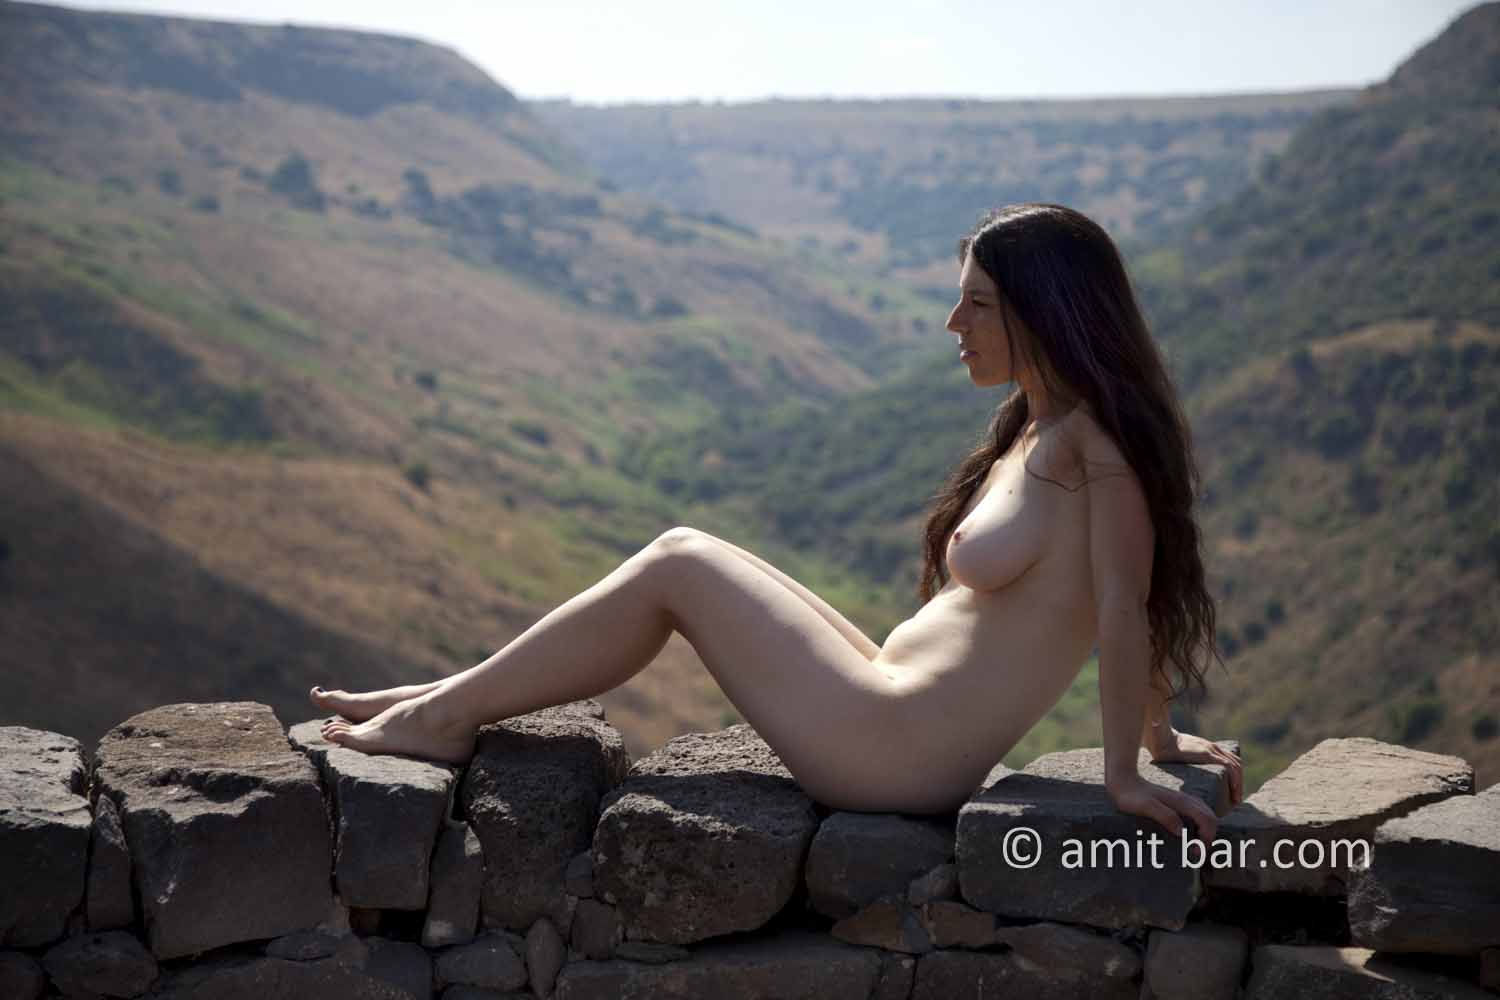 Gamla I: Nude model at Gamla fortress, the Golan Heights